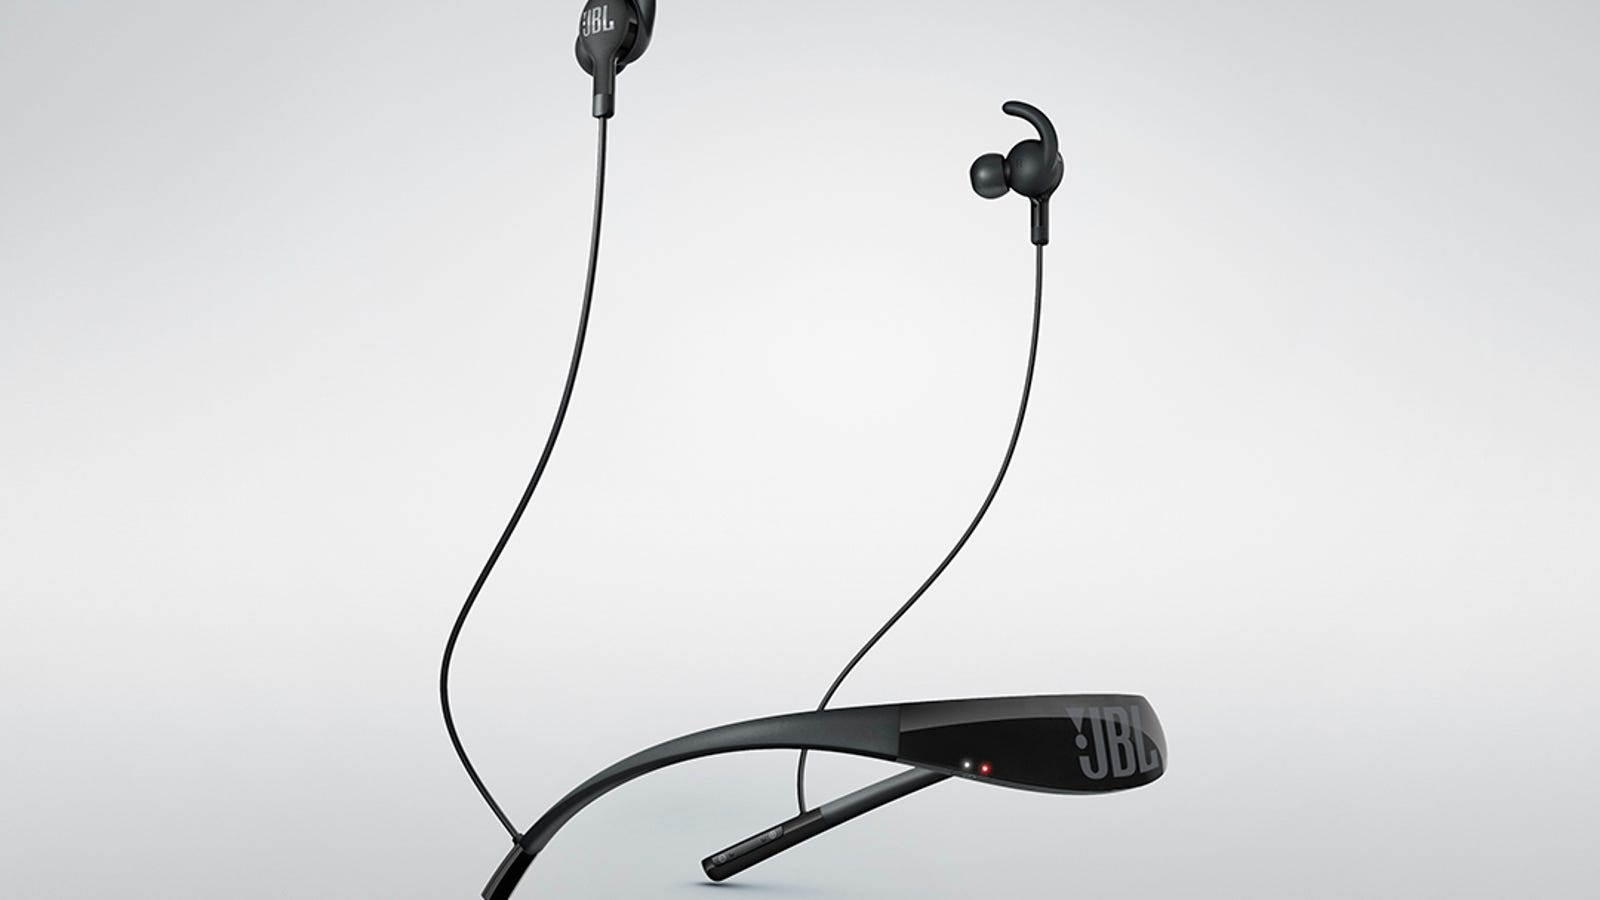 bose earbuds clip blue - You Won't Hear the Haters With These Noise-Cancelling Earbuds